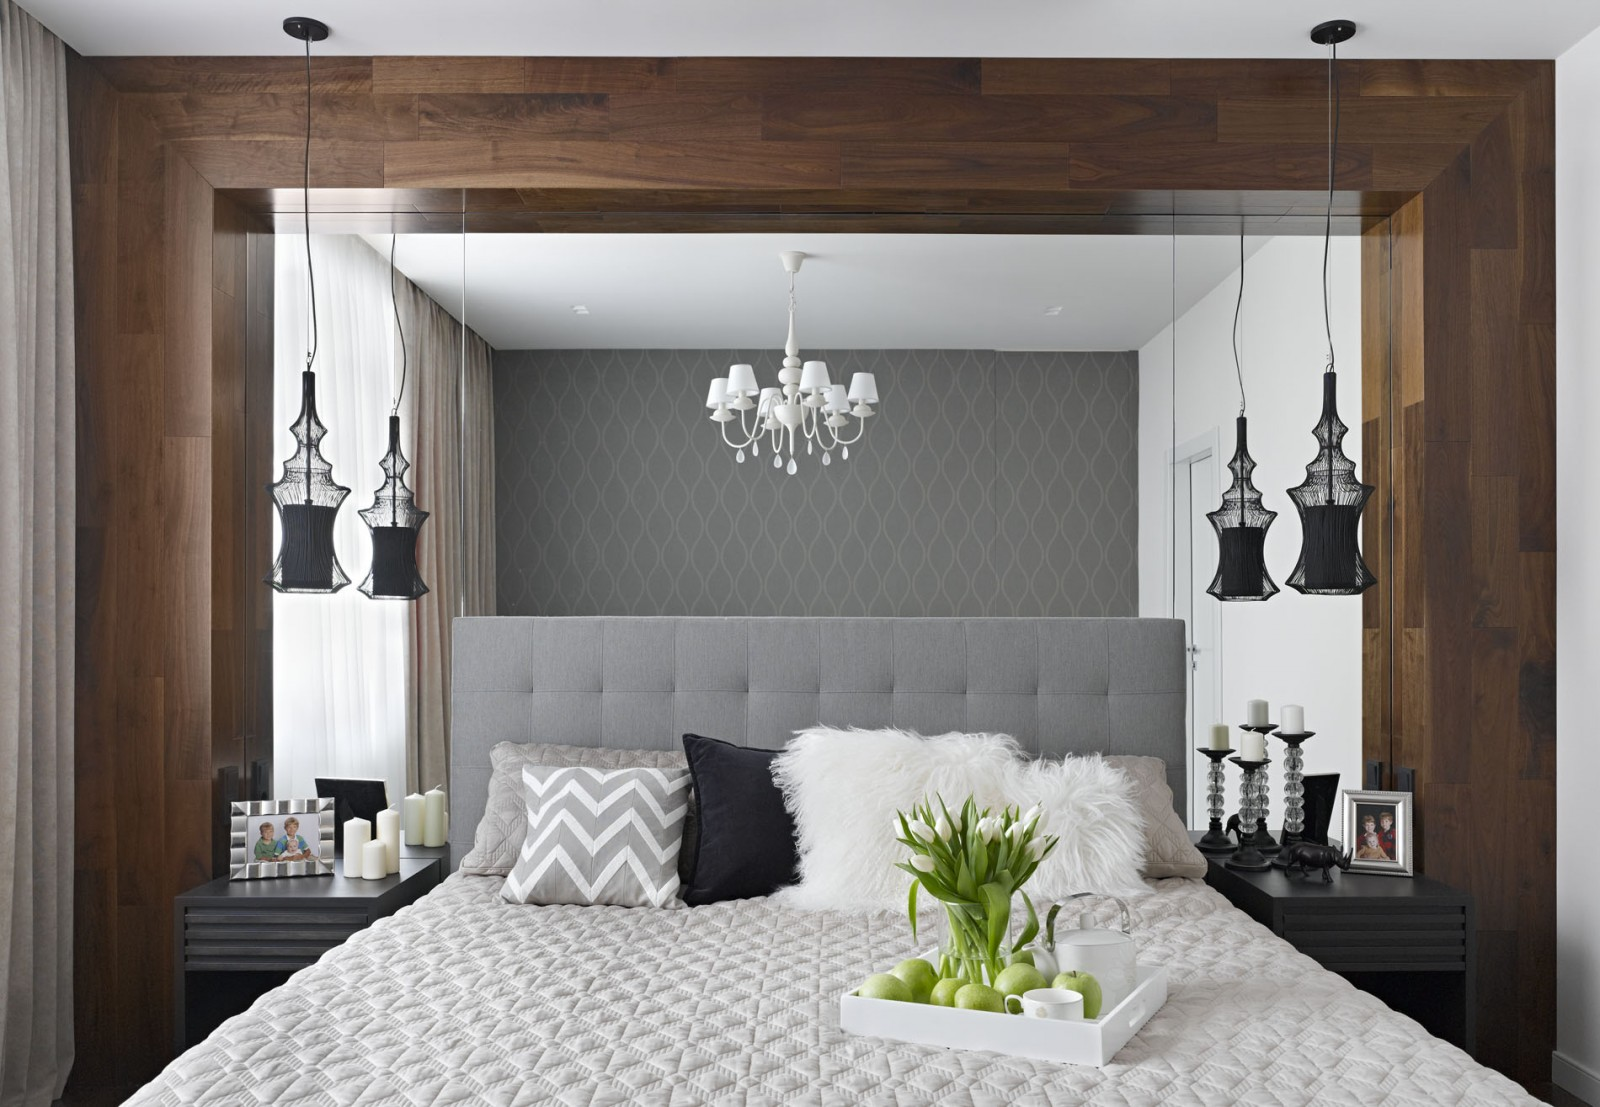 amazing bedroom ideas from alexandra fedorova small22 small